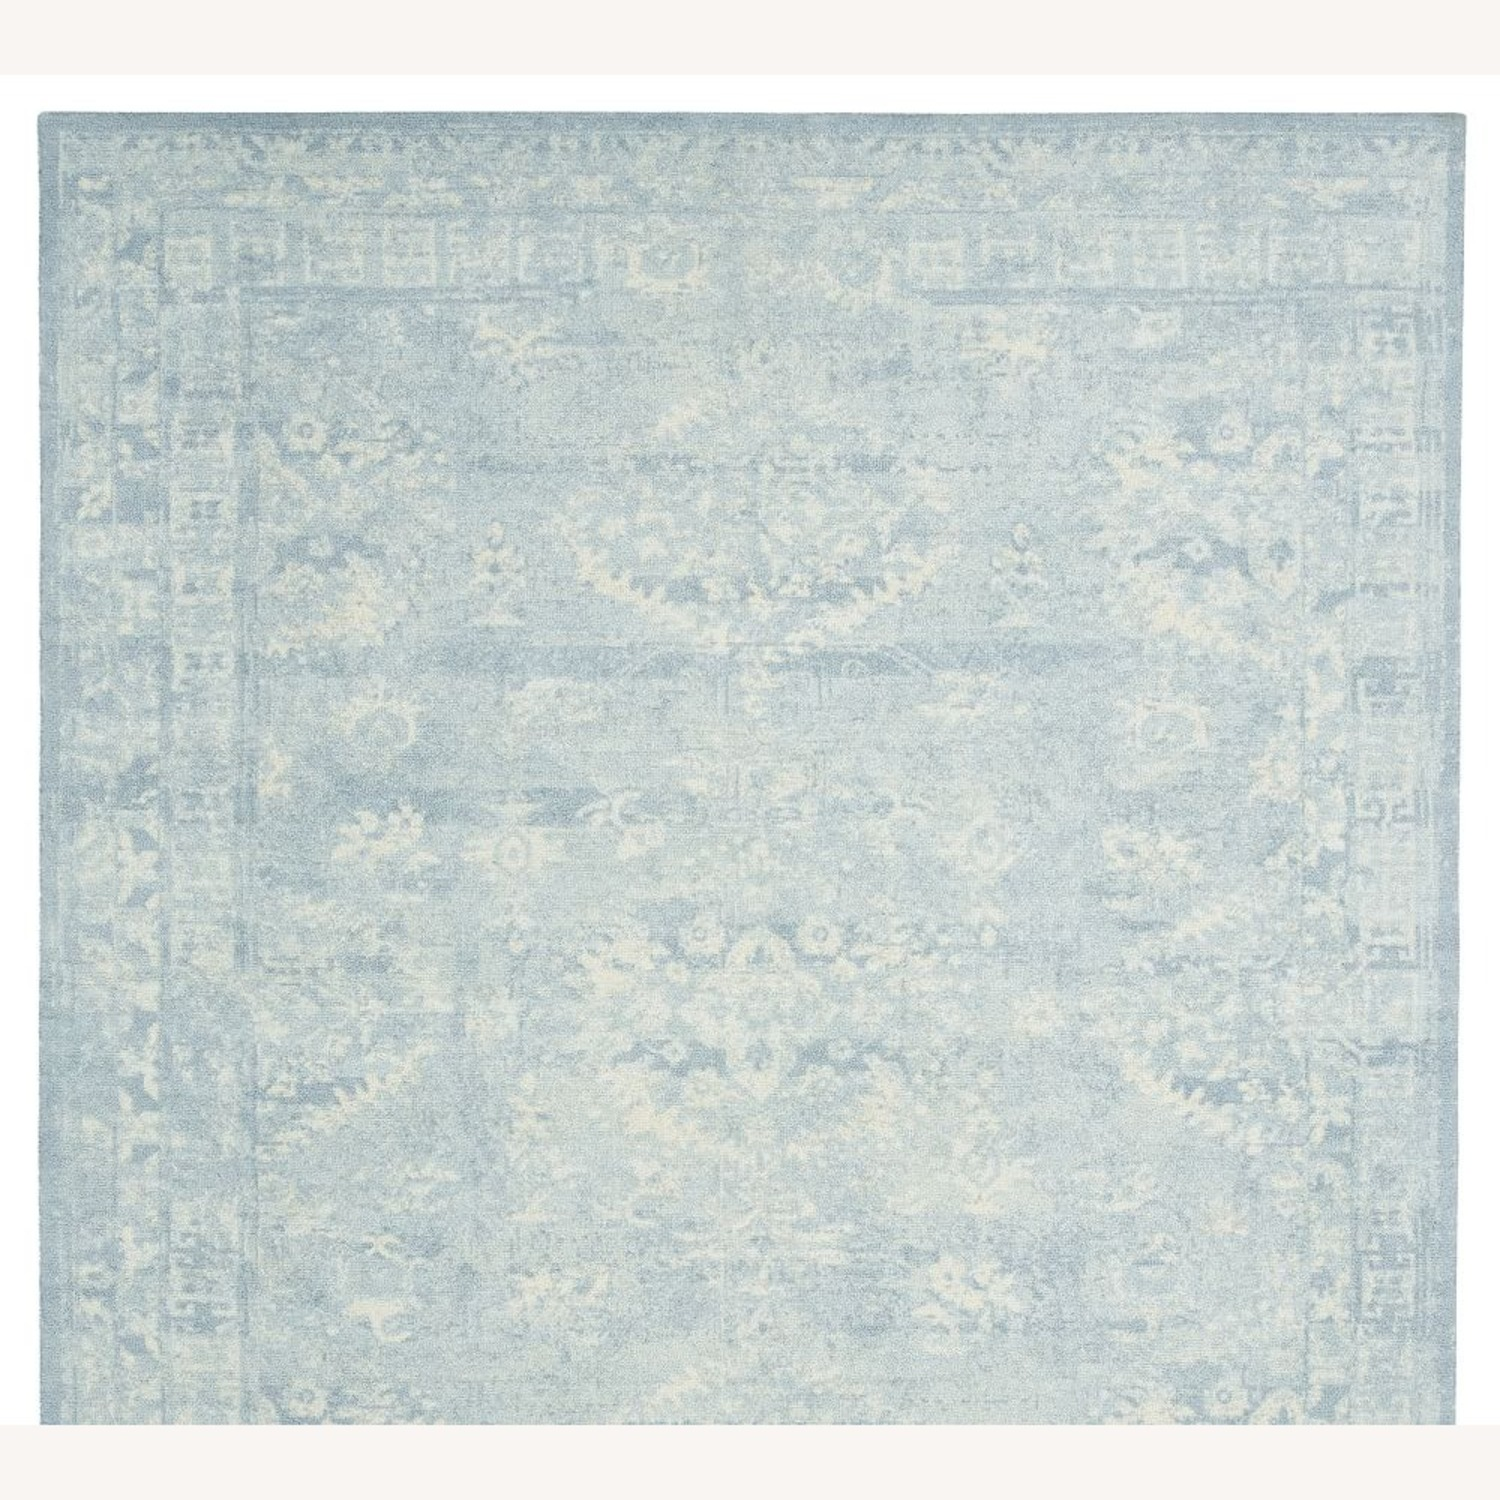 Pottery Barn Gabrielle Handtufted Wool Rug , 3 x 5 - image-3